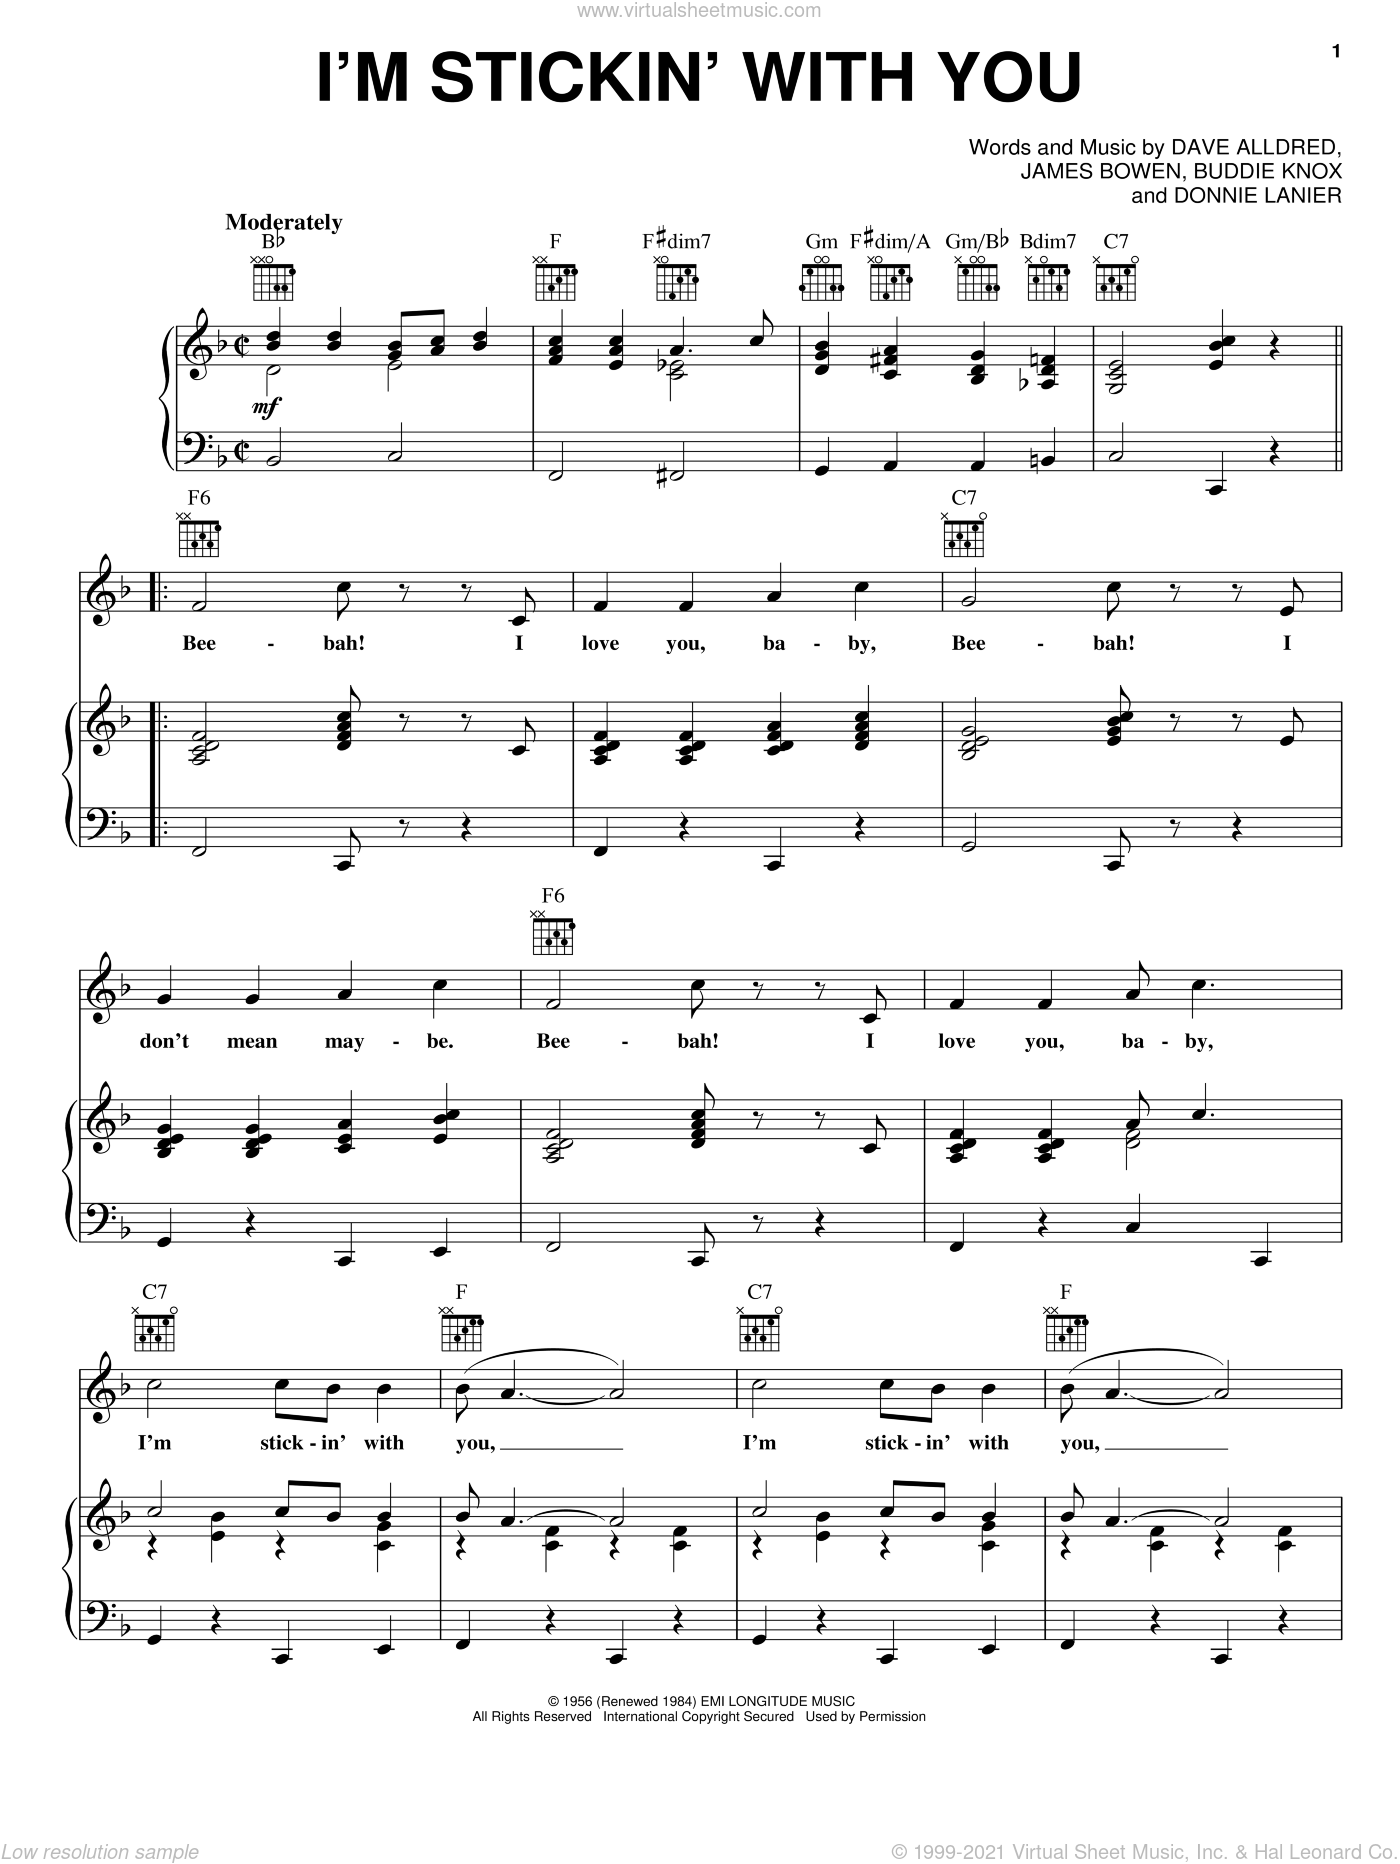 I'm Stickin' With You sheet music for voice, piano or guitar by Jimmy Bowen, Buddie Knox, Buddy Knox, Dave Alldred, Donnie Lanier and James Bowen, intermediate skill level